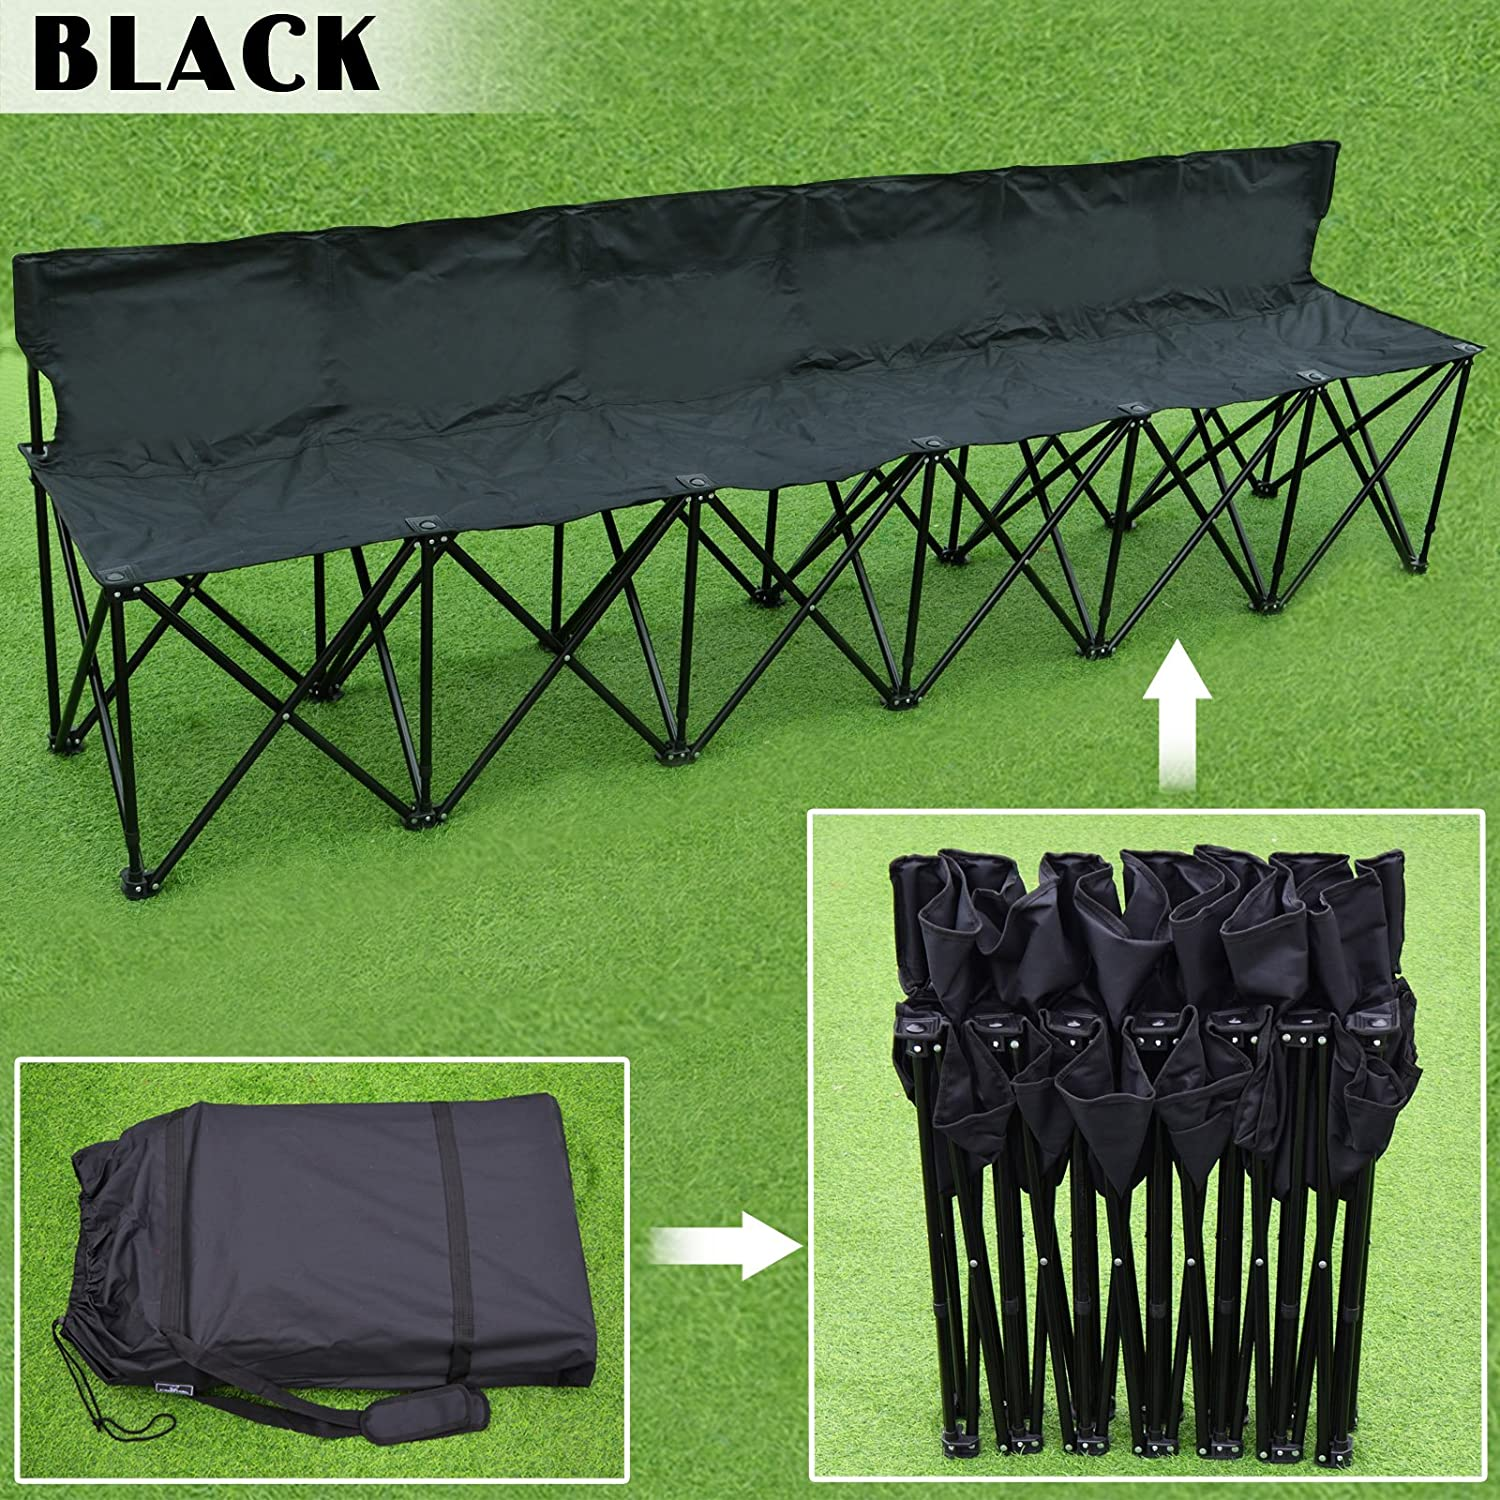 Yaheetech 6 Seats Foldable Sideline Bench with Back for Sports Team Camping Folding Bench Chairs Blue//Black Renewed